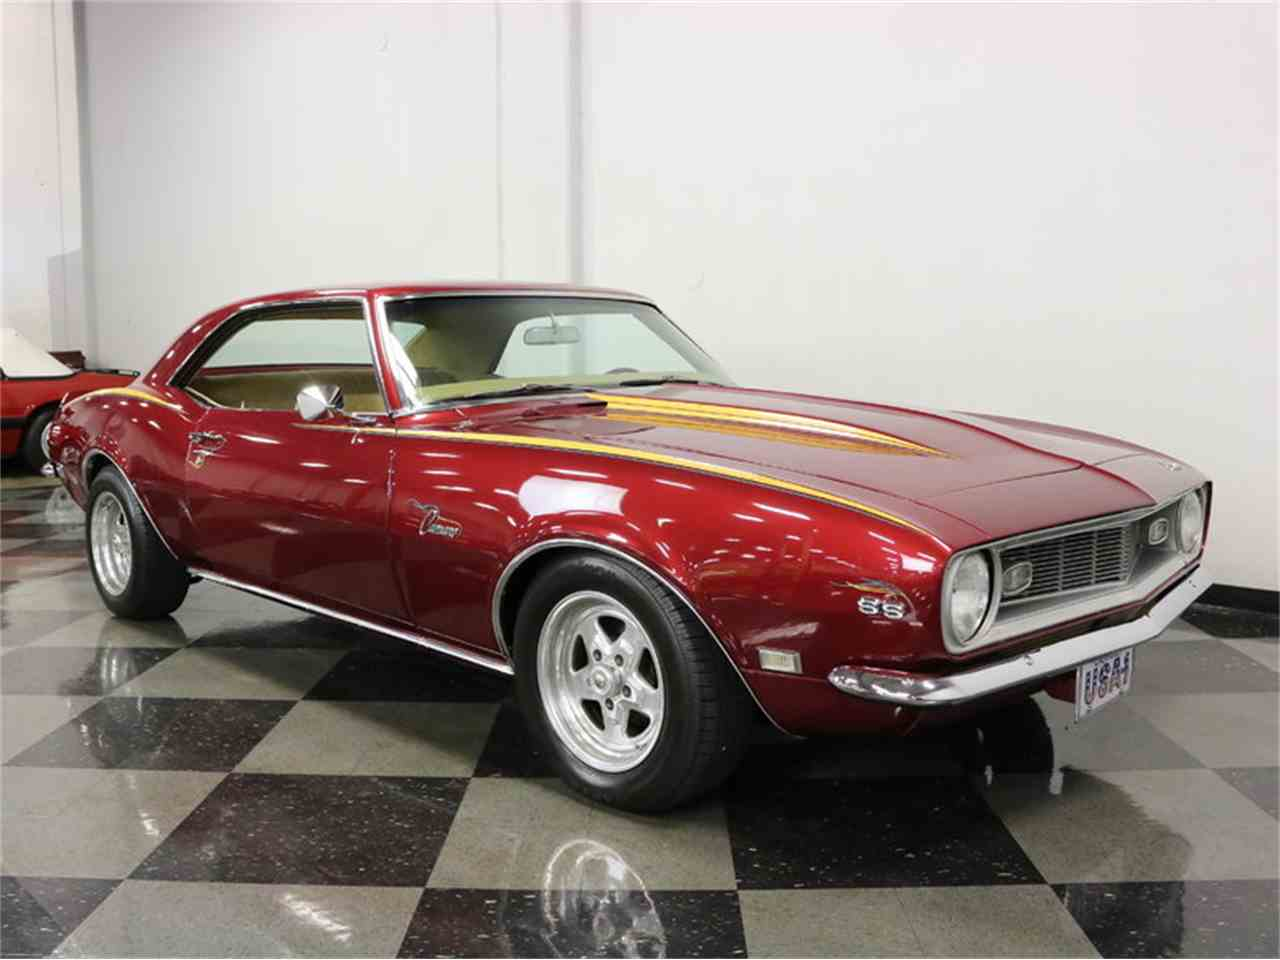 Large Picture of Classic '68 Camaro SS located in Texas - $29,995.00 Offered by Streetside Classics - Dallas / Fort Worth - LSS3